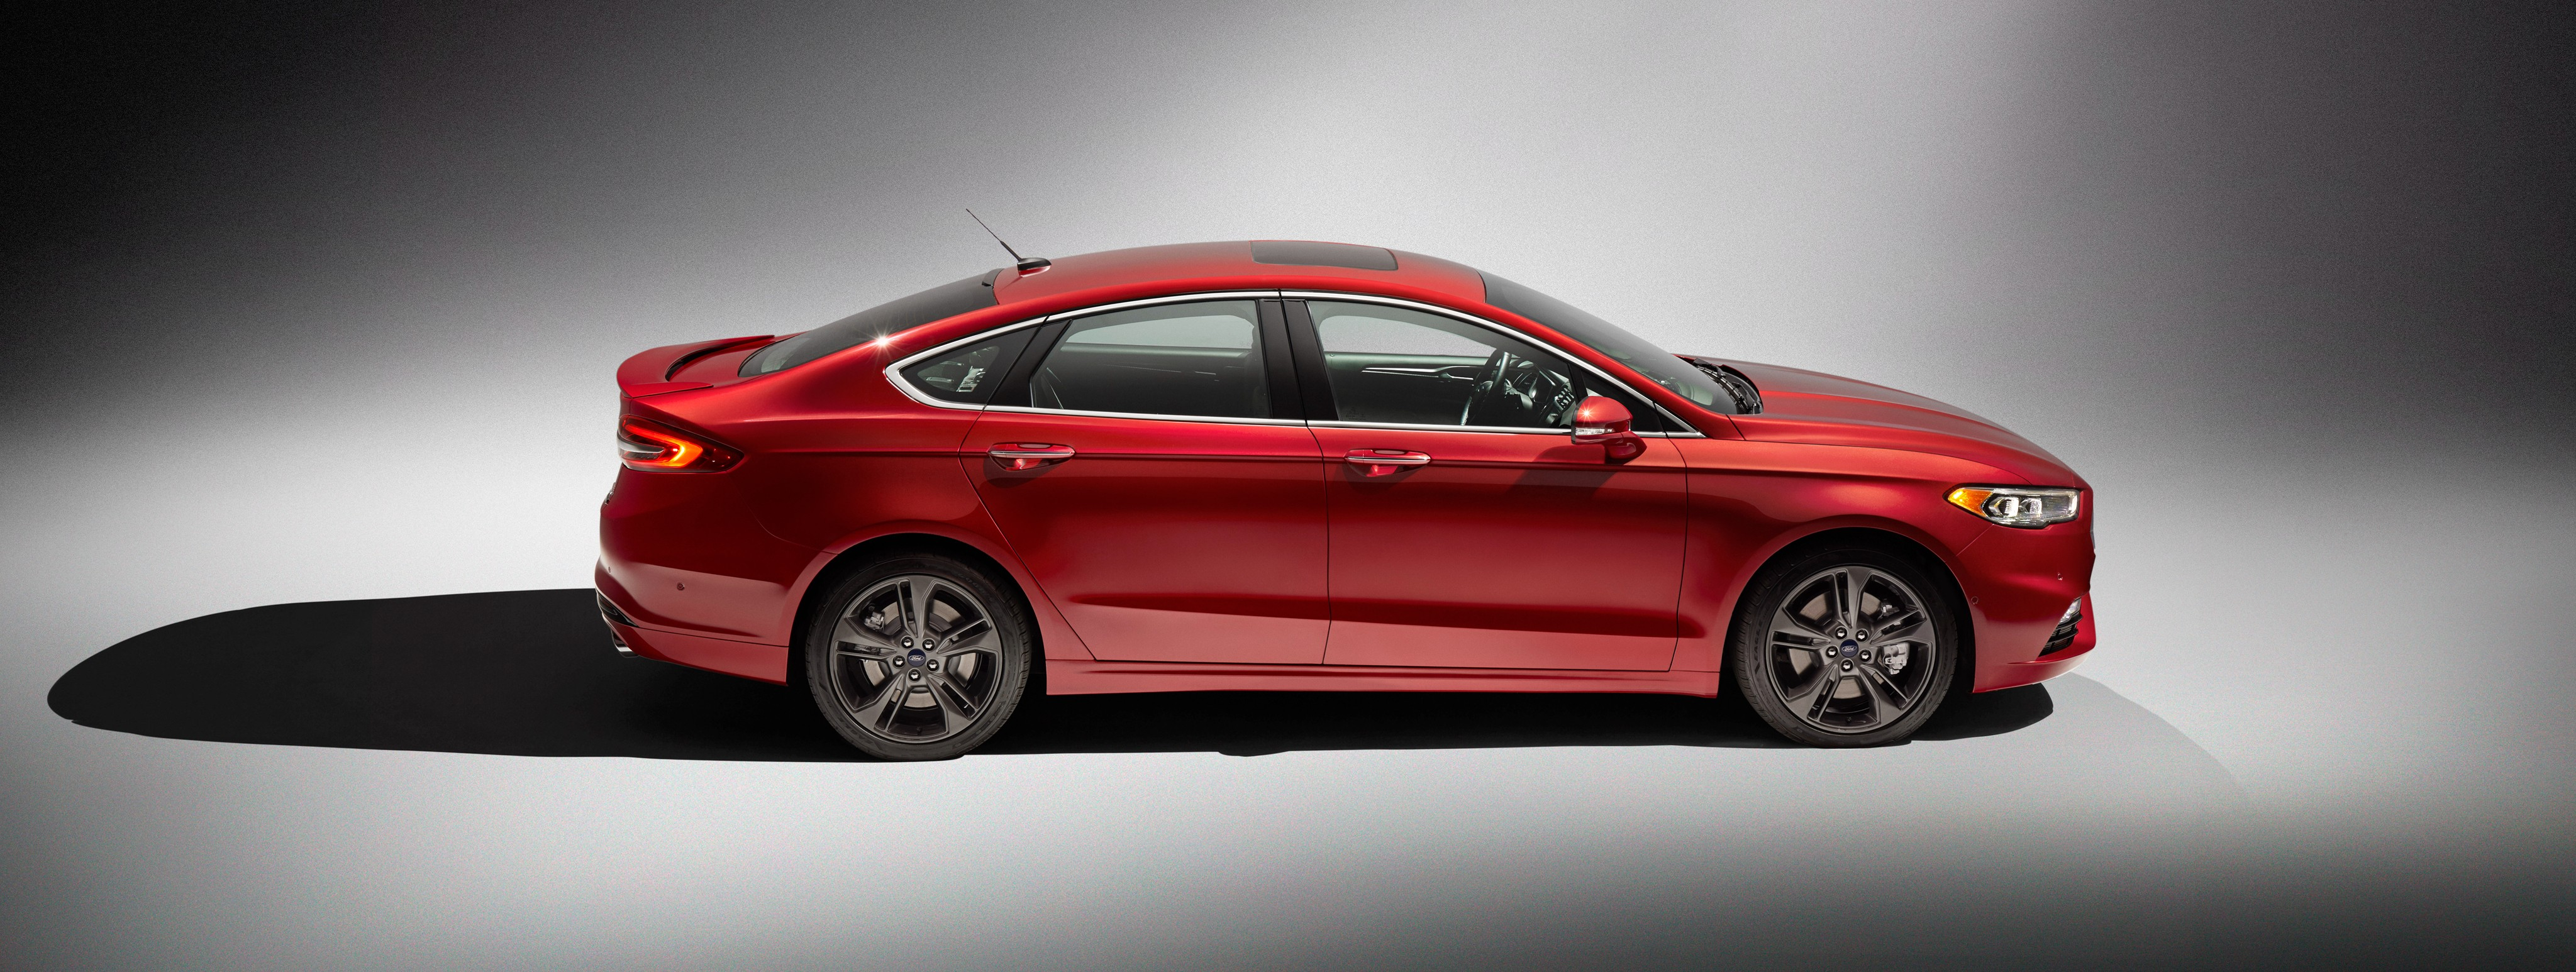 all new camry australia grand veloz bekas 2020 ford fusion redesign cancelled, declining sales are ...